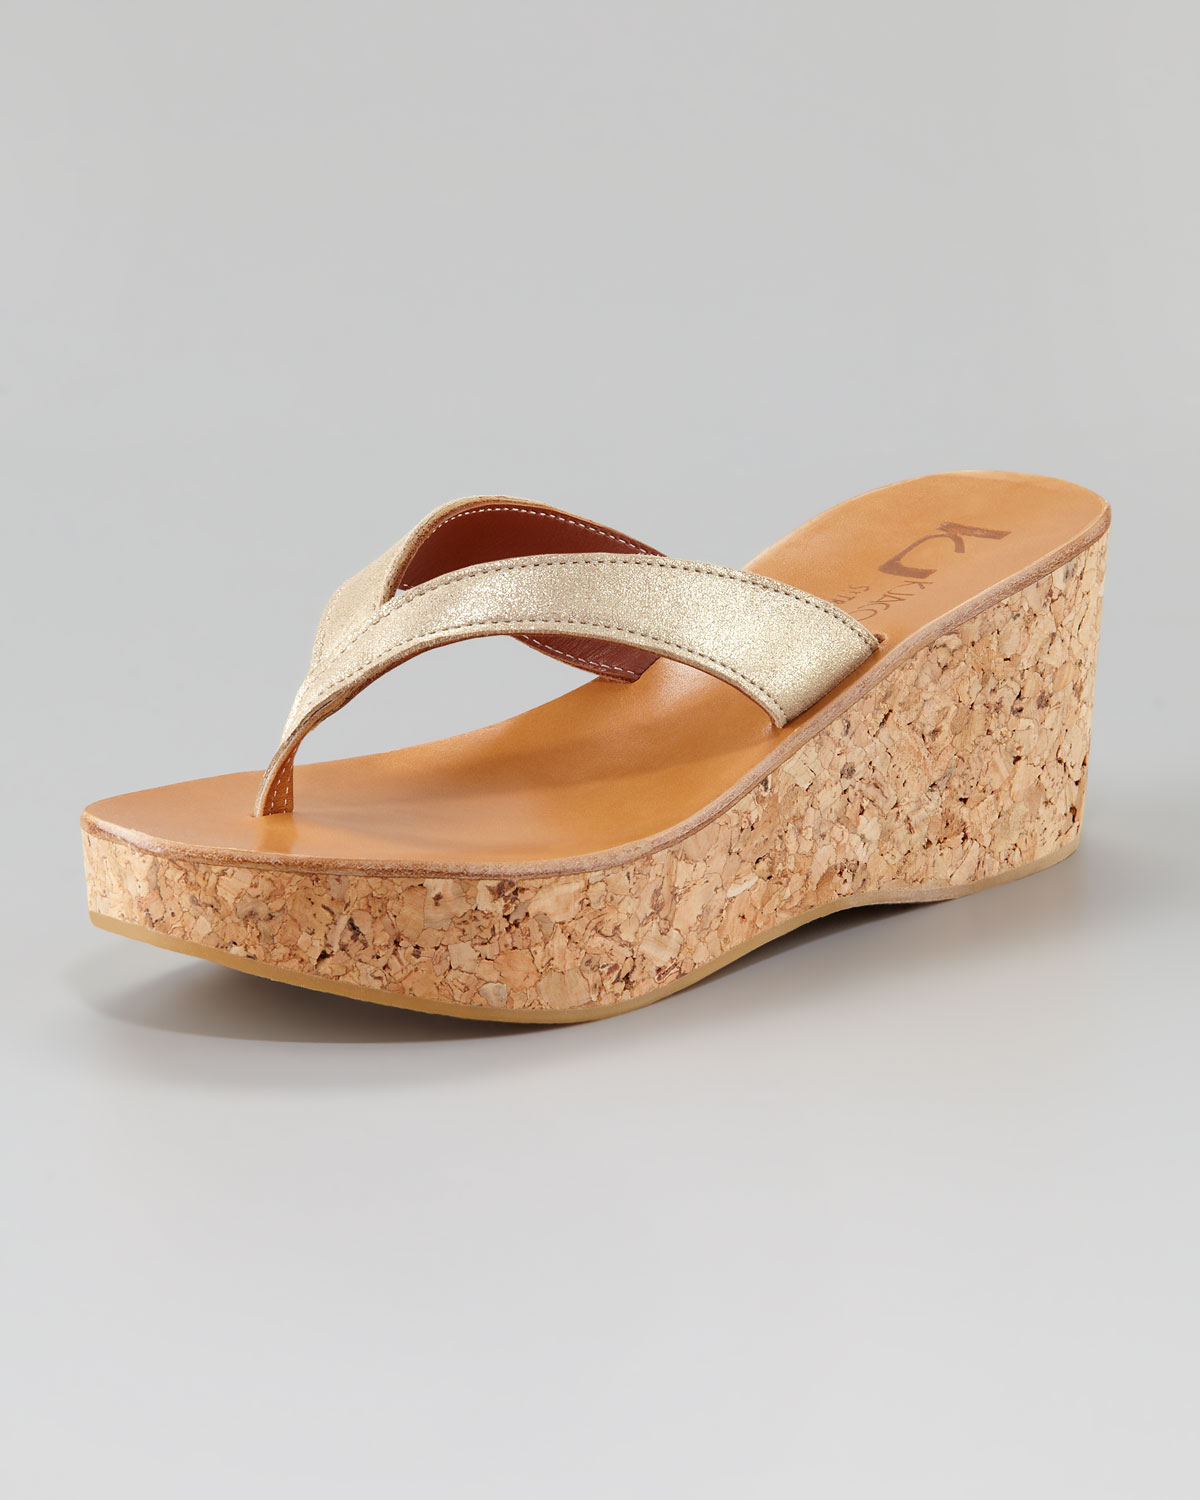 ef201d1bb364 Lyst - K. Jacques Diorite Cork Wedge Sandal Gold in Metallic